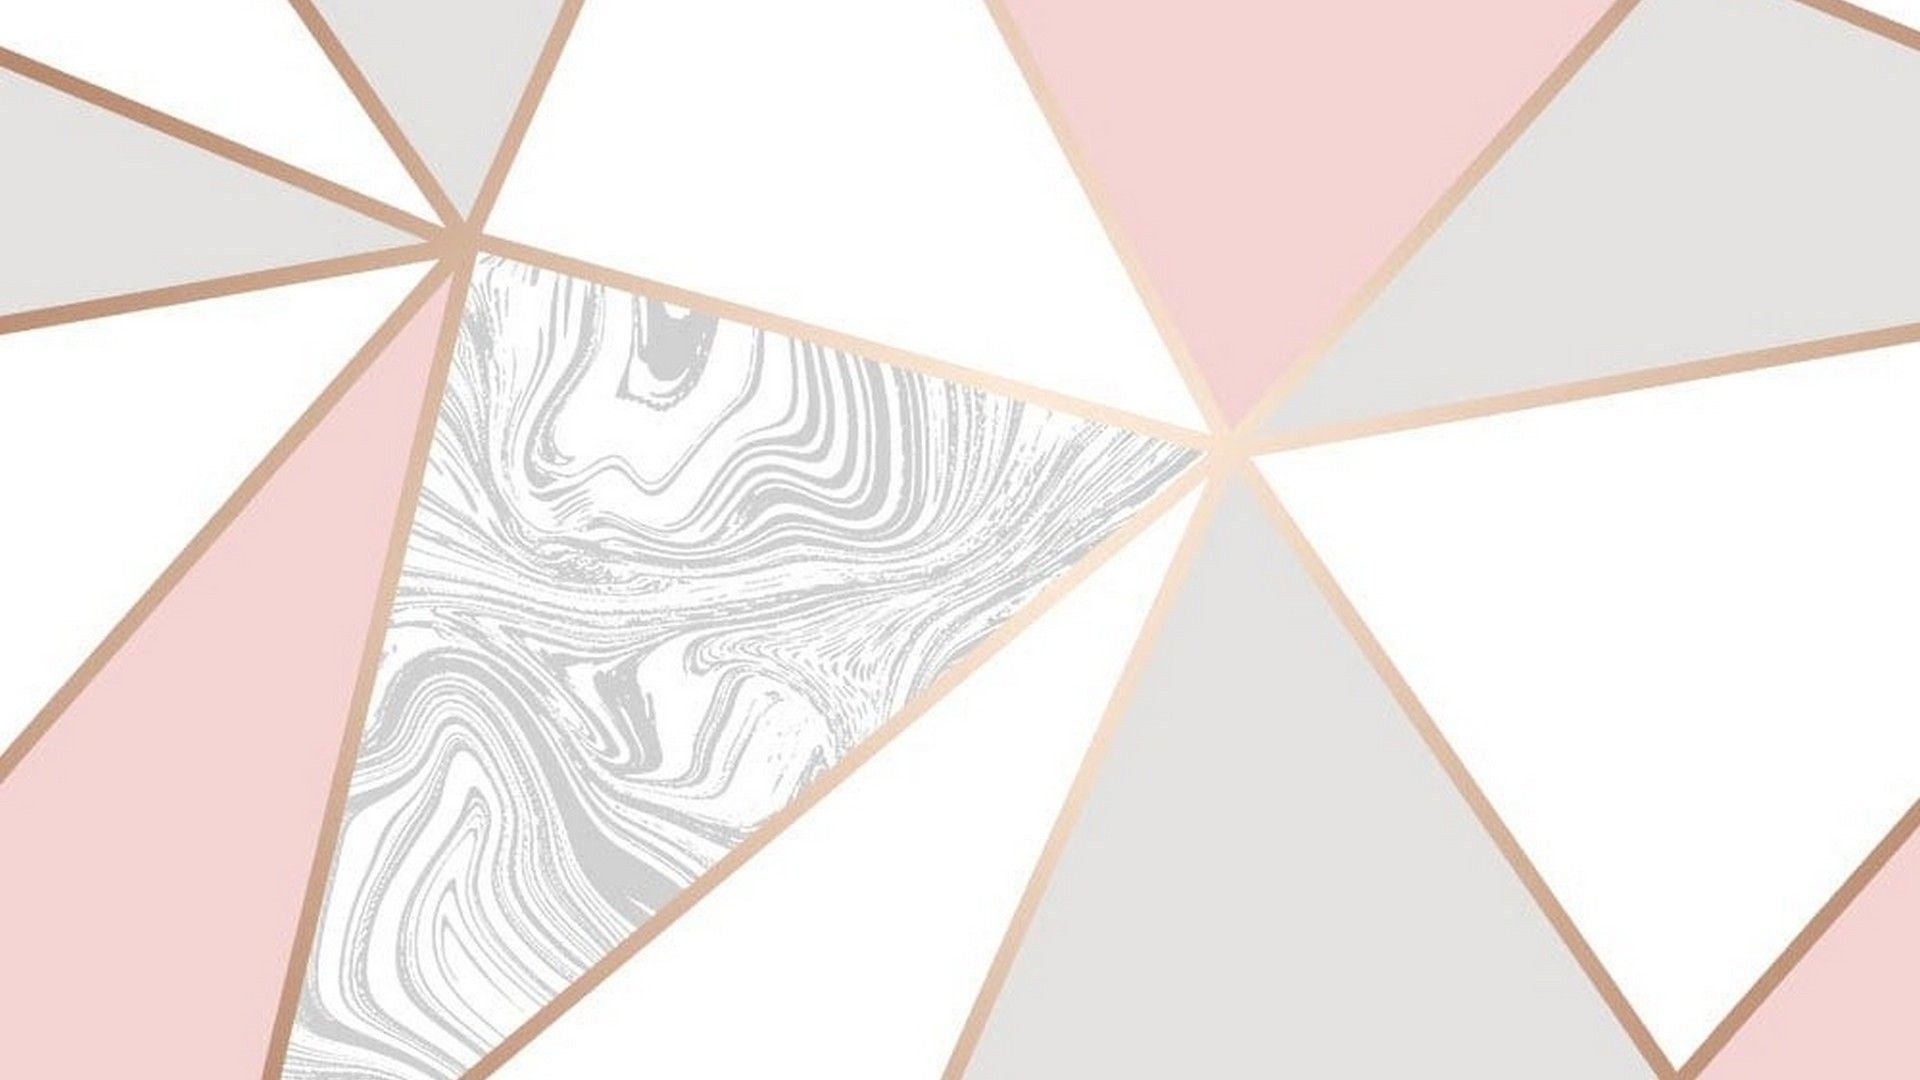 Pink Marble Desktop Wallpapers Top Free Pink Marble Desktop Backgrounds Wallpape Rose Gold Marble Wallpaper Gold Marble Wallpaper Gold Wallpaper Background